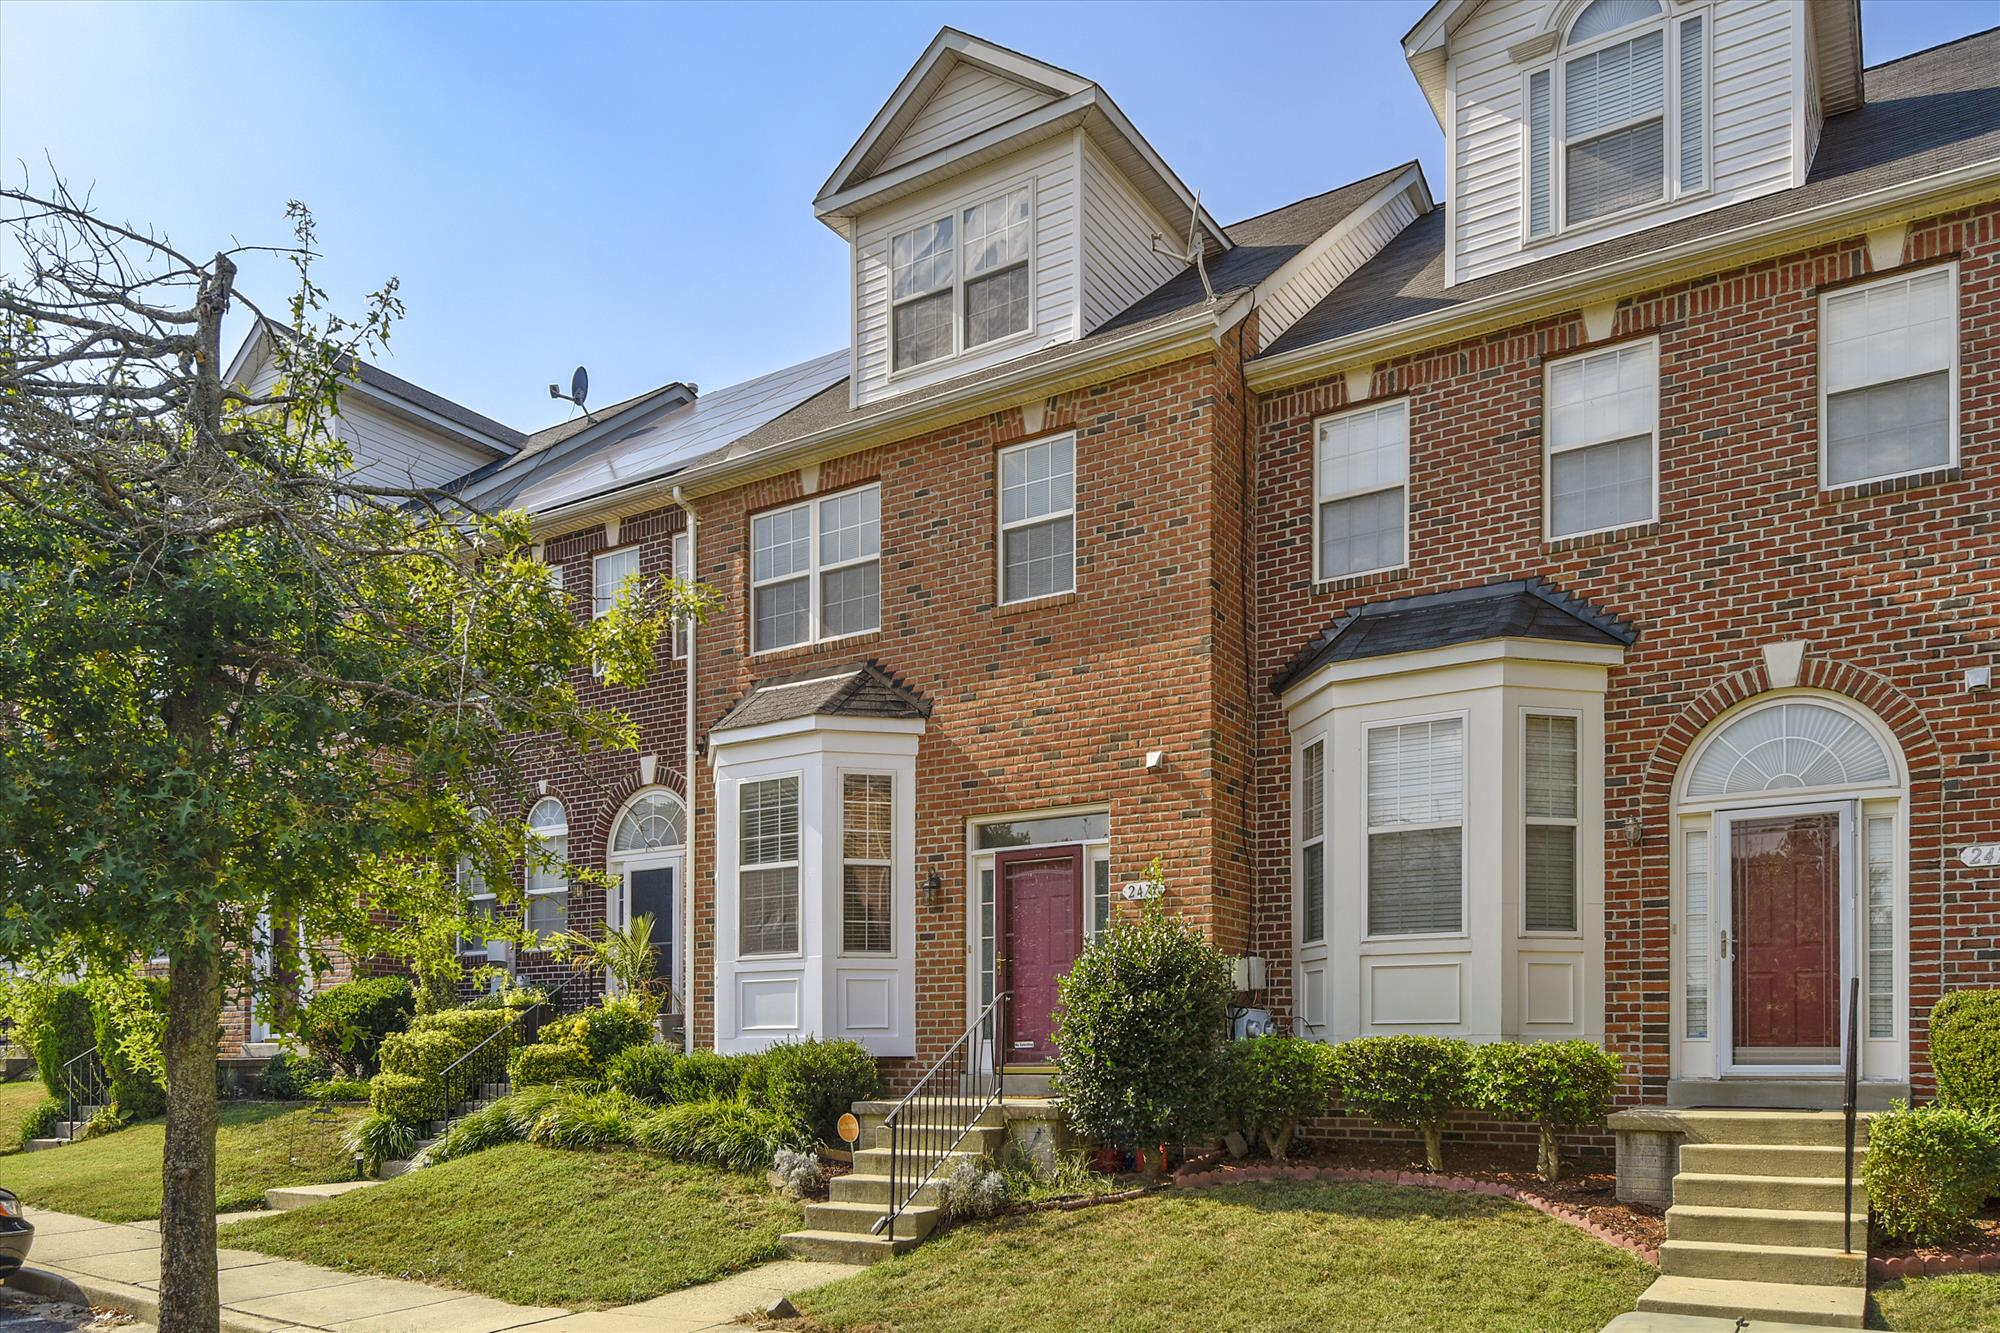 home for sale in waldorf md near Andrews AFB